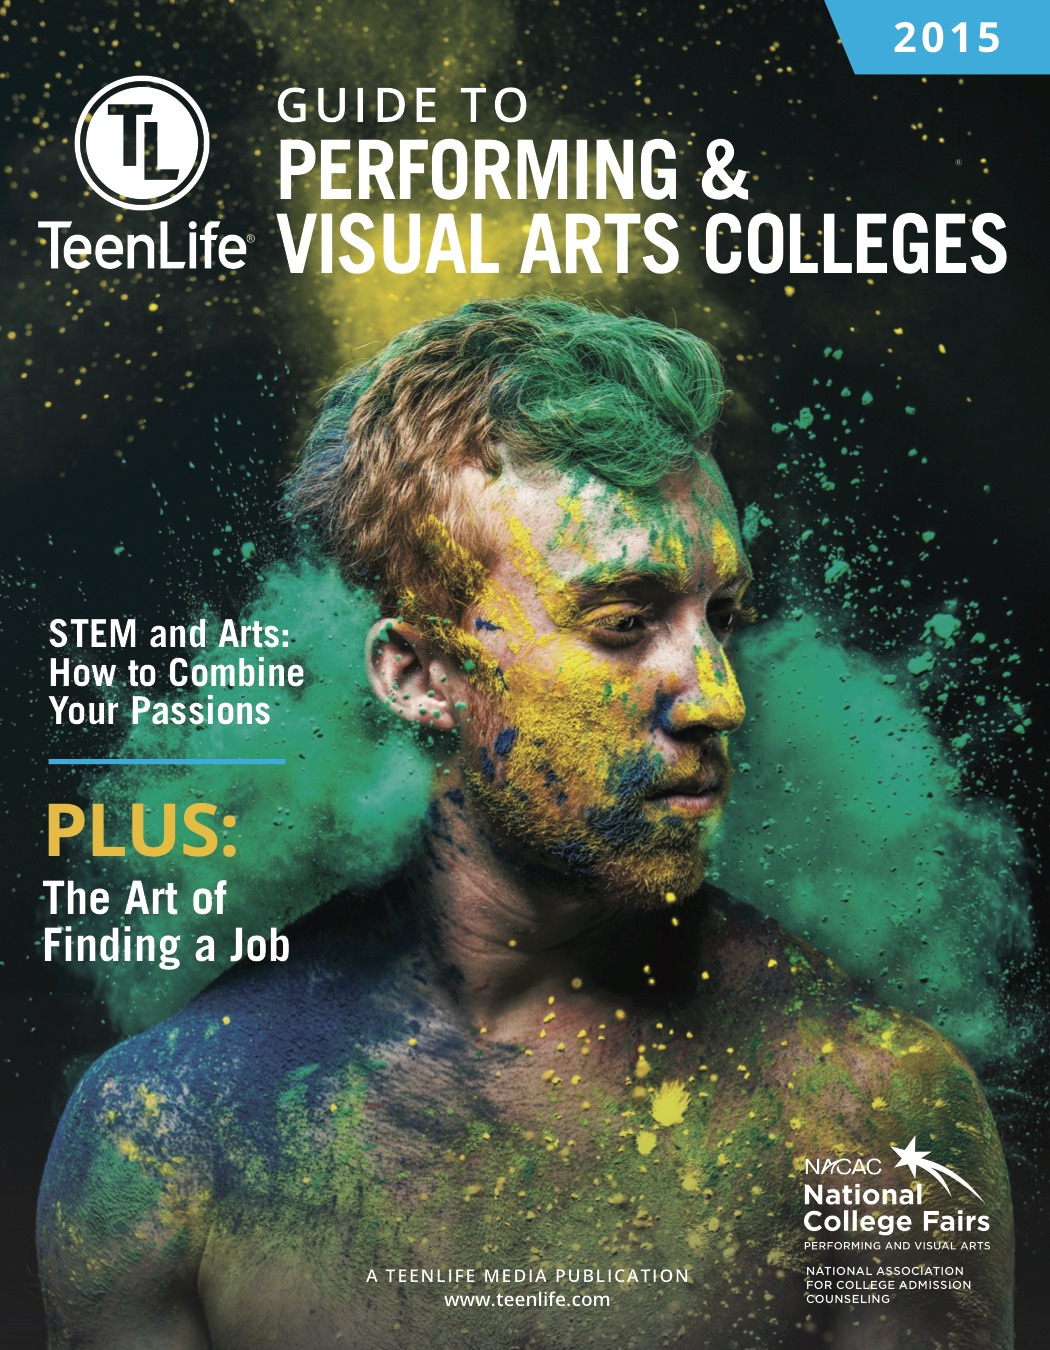 Guide to Performing and Visual Arts Colleges 2015-TeenLife